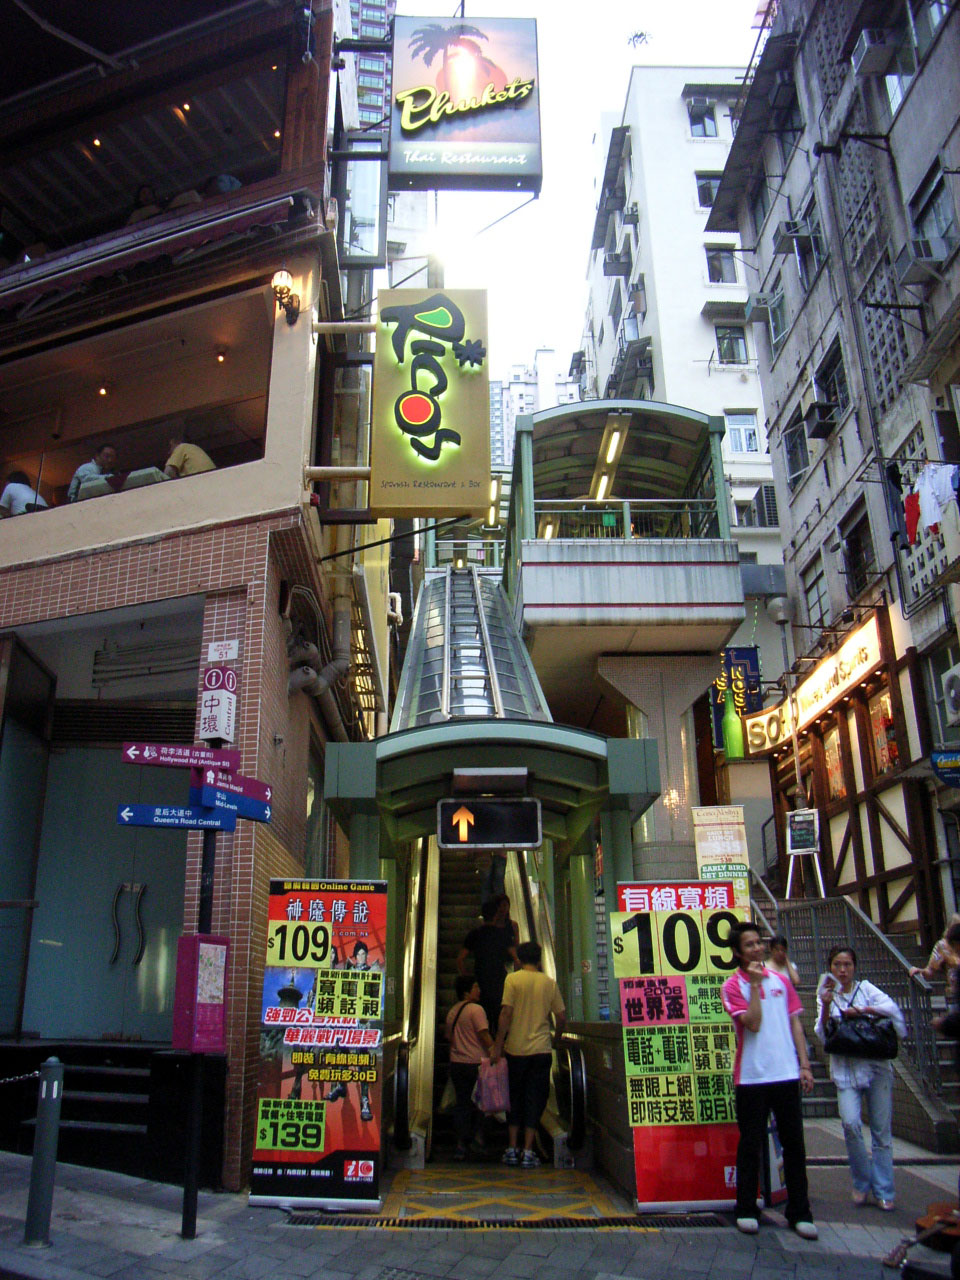 HK_Escalators-1.jpg